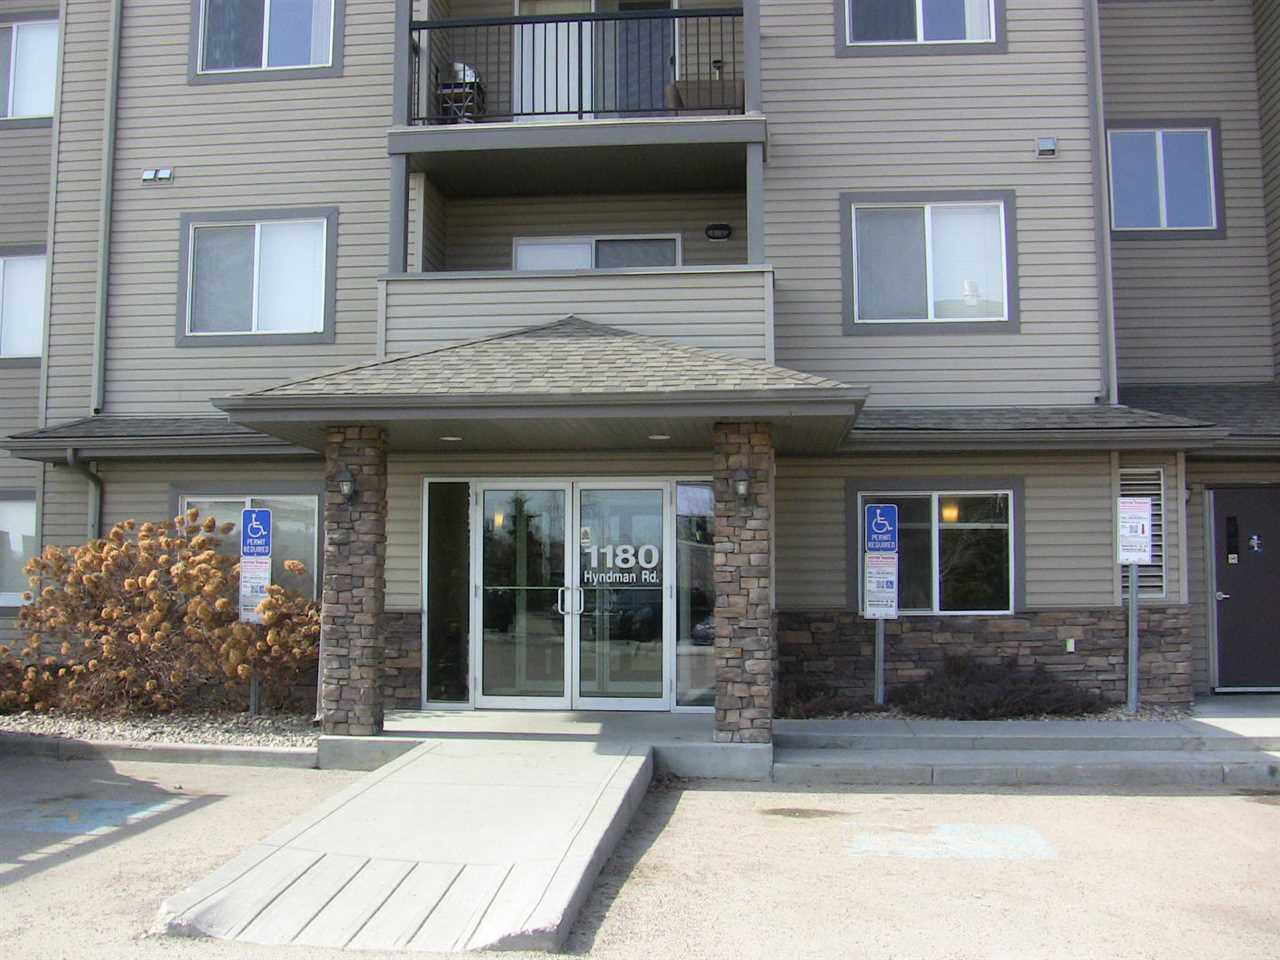 MLS® listing #E4152428 for sale located at 339 1180 HYNDMAN Road